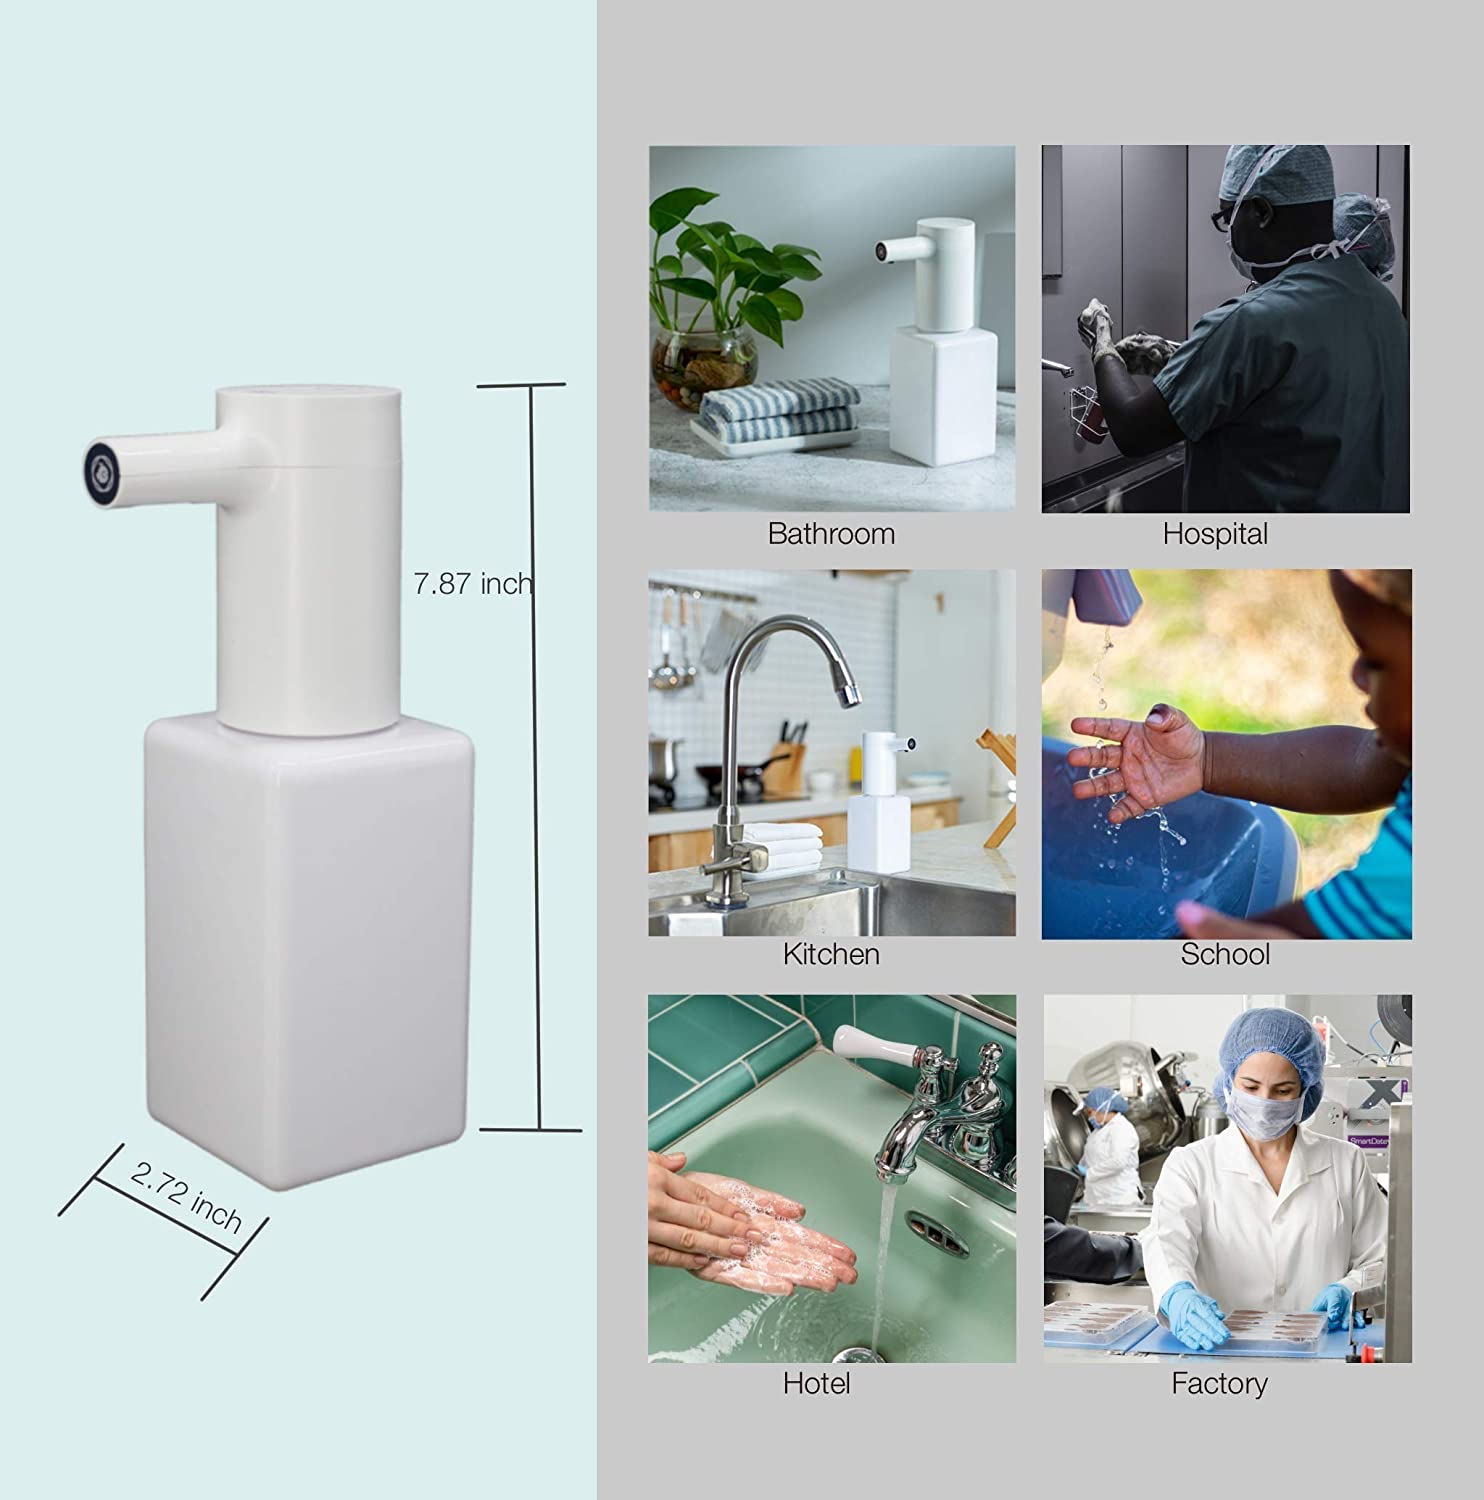 VBLab Automatic Foaming Soap Dispenser White Adjustable USB Charging Infrared Sensor Detection Touch-Free Soap Pump for Kitchen Bathroom Morden Styling Upgraded Waterproof